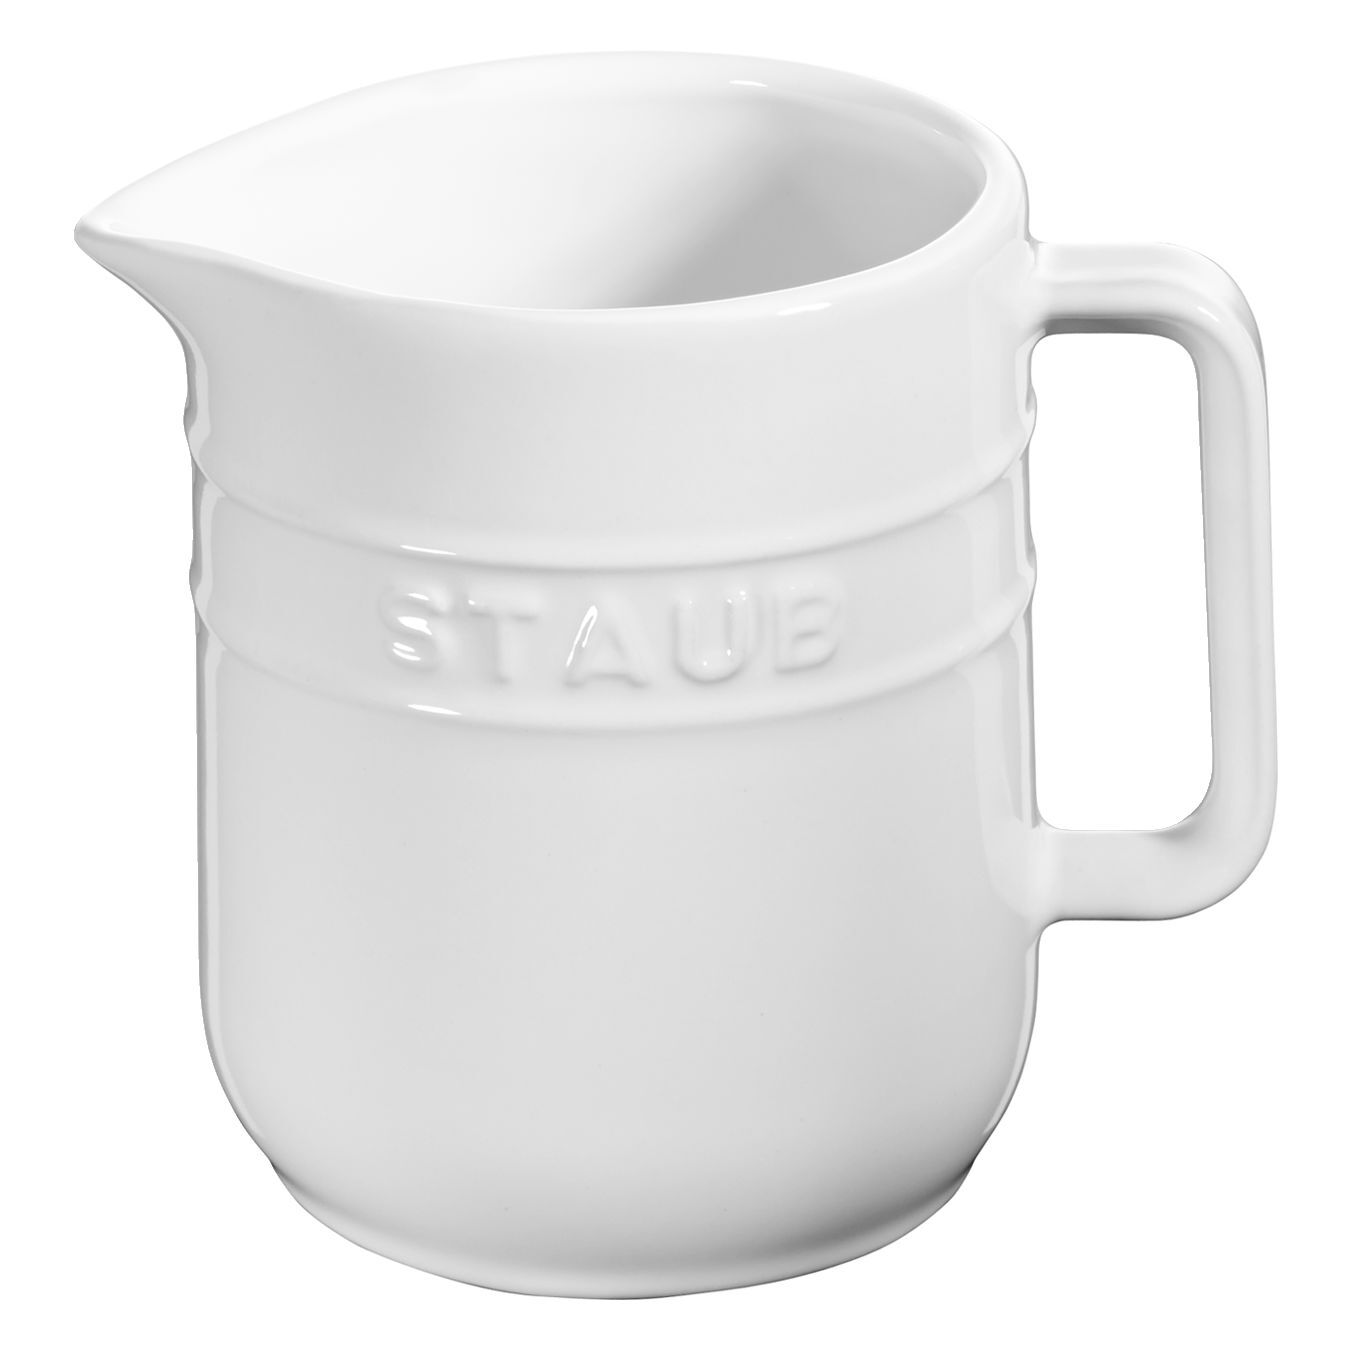 250 ml Ceramic Pitcher, Pure-White,,large 1